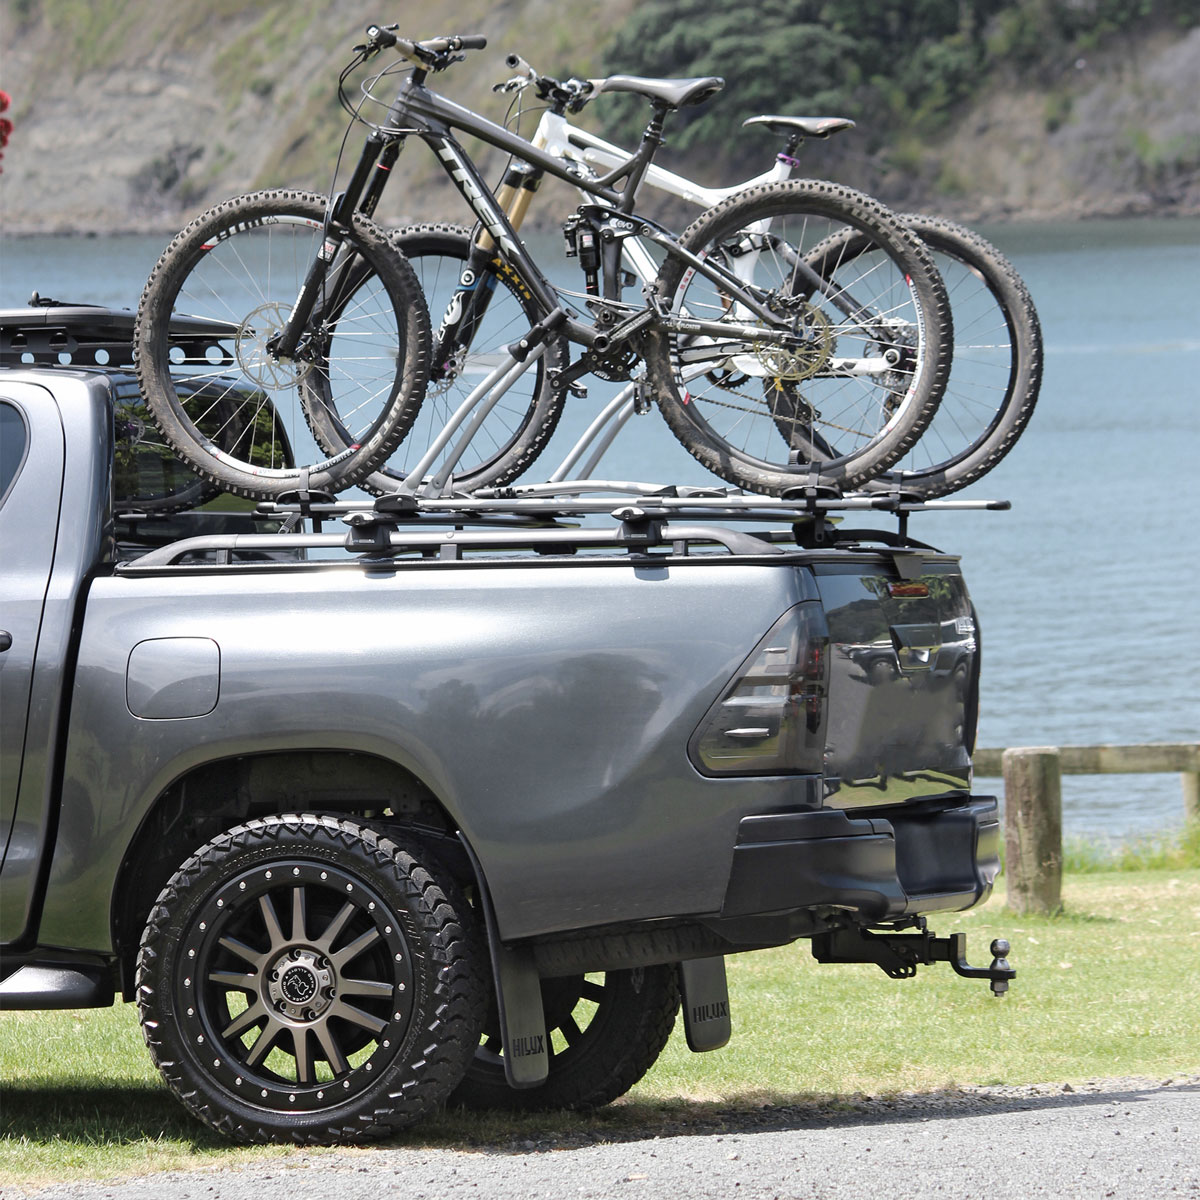 Frame Mount Bike Carriers for the Utemaster Load-Lid